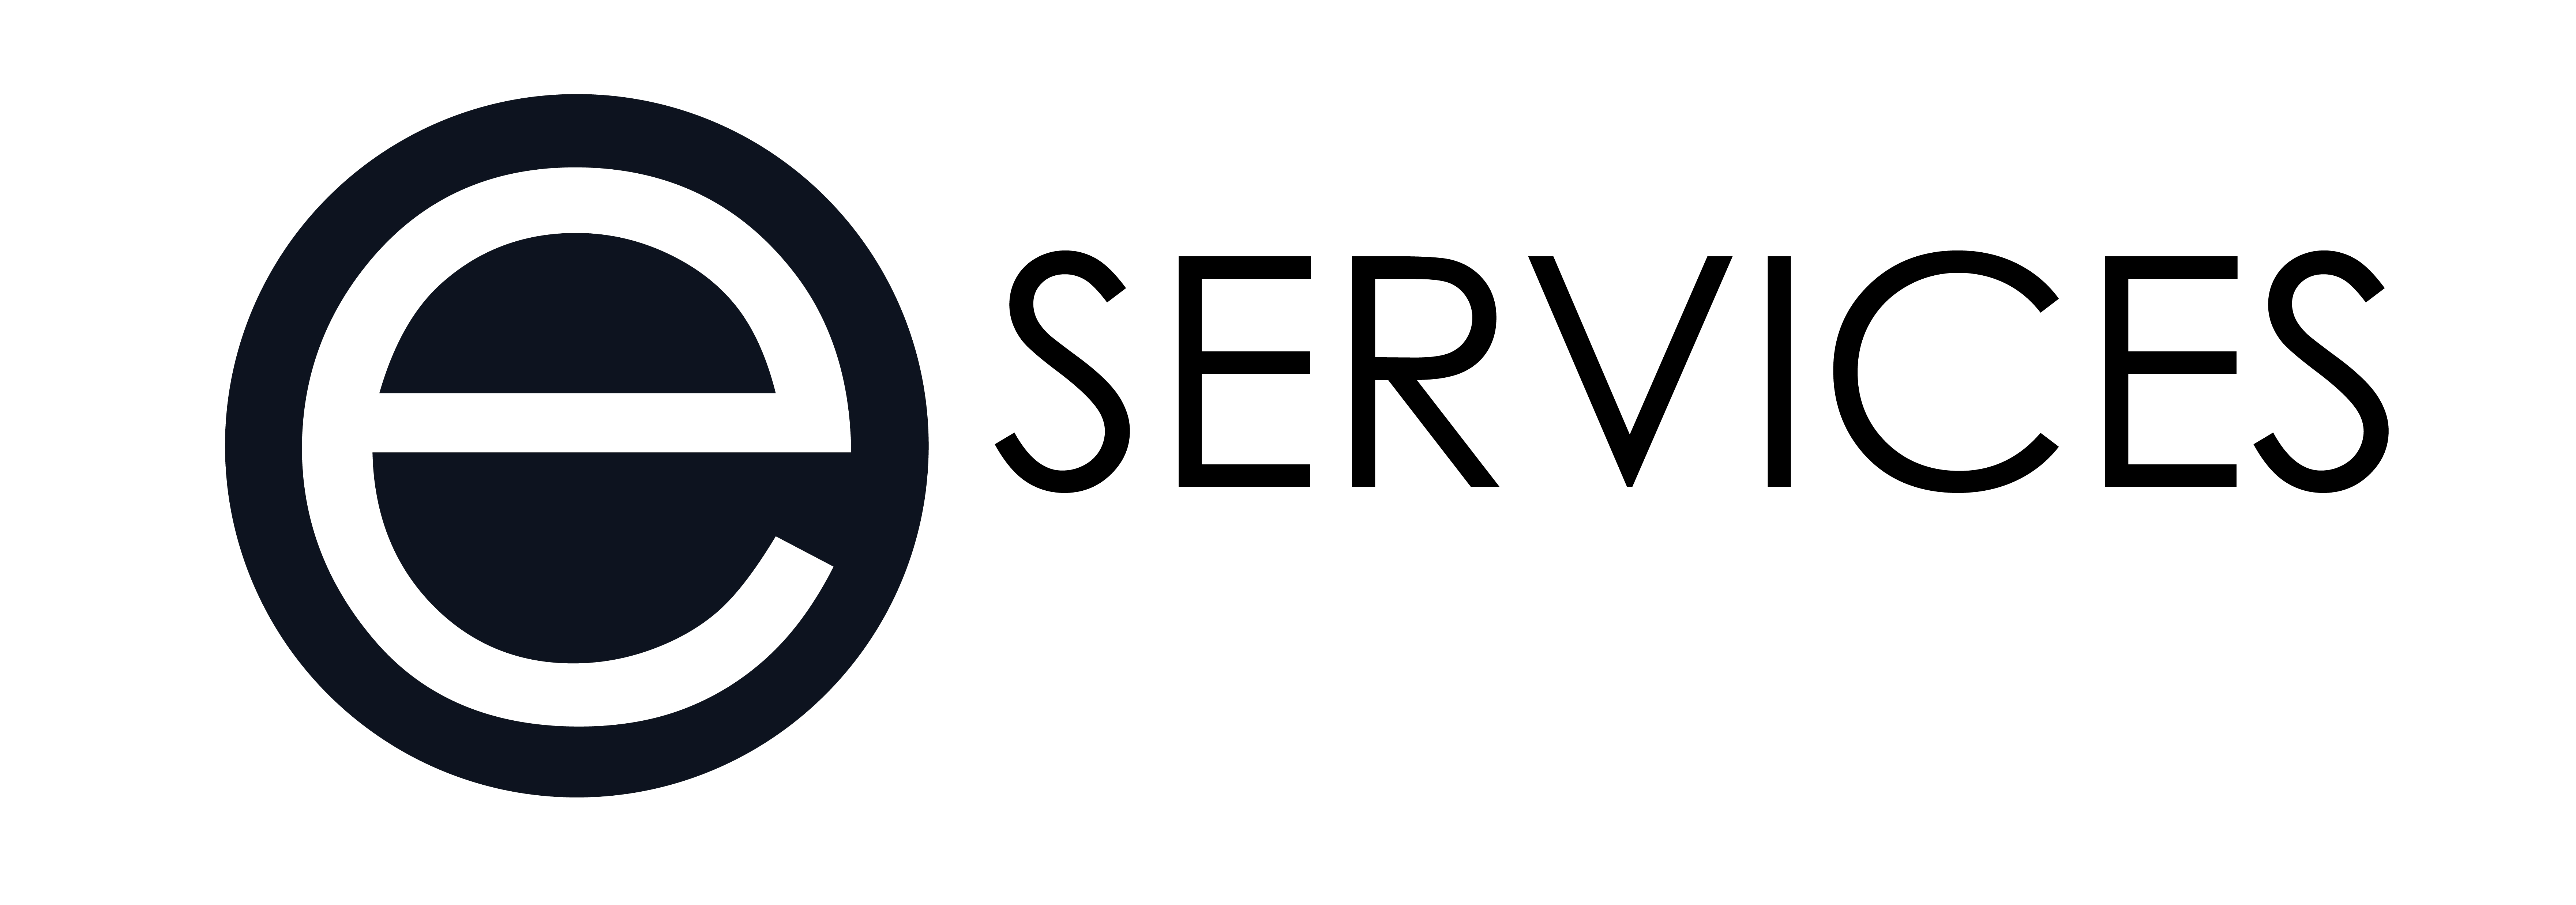 eservices announces launch of etechnology services business wire